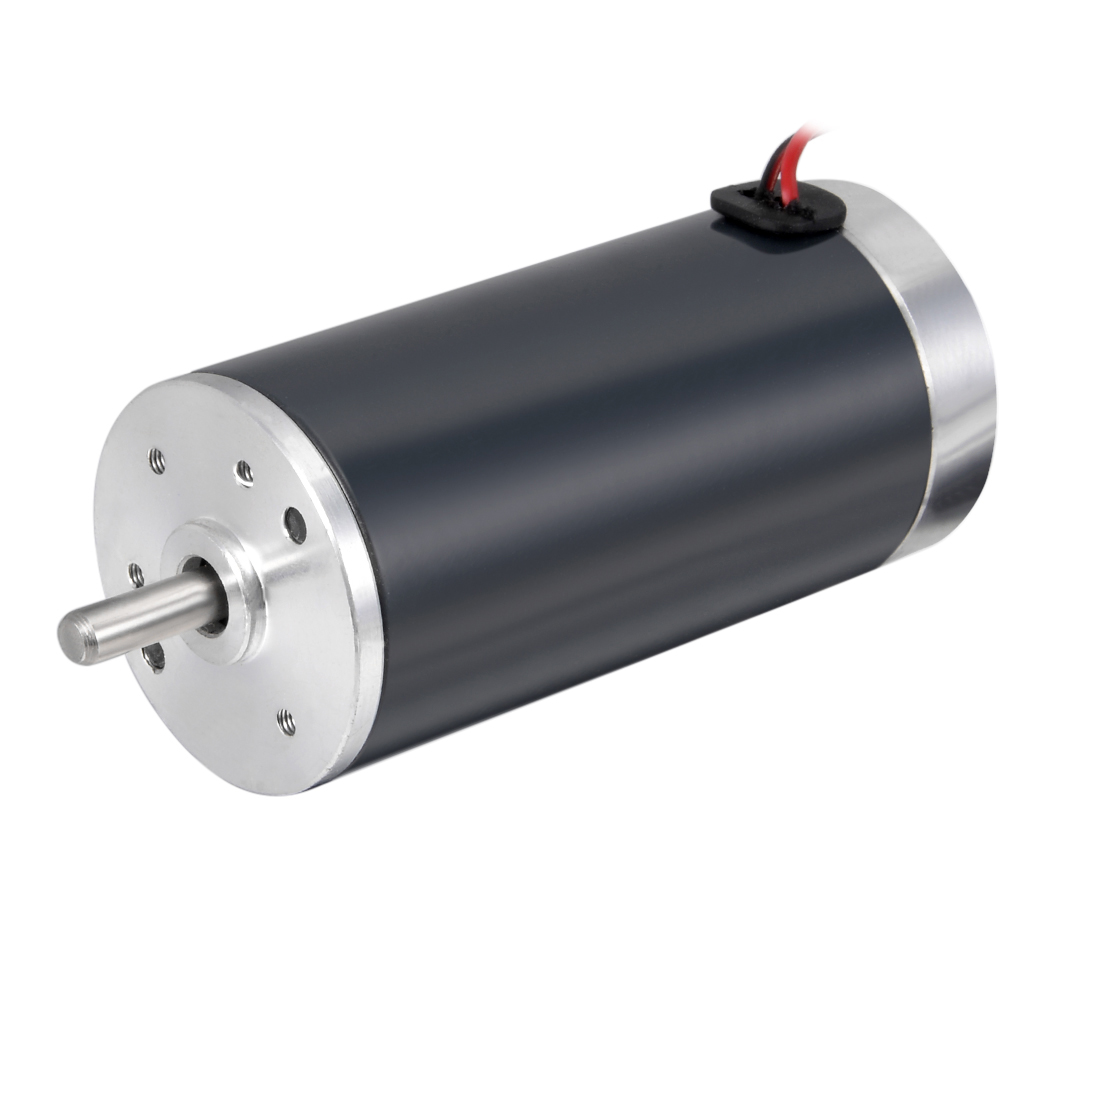 750G.cm Torque Brushed Electric Motor 24V DC 4000RPM High Speed